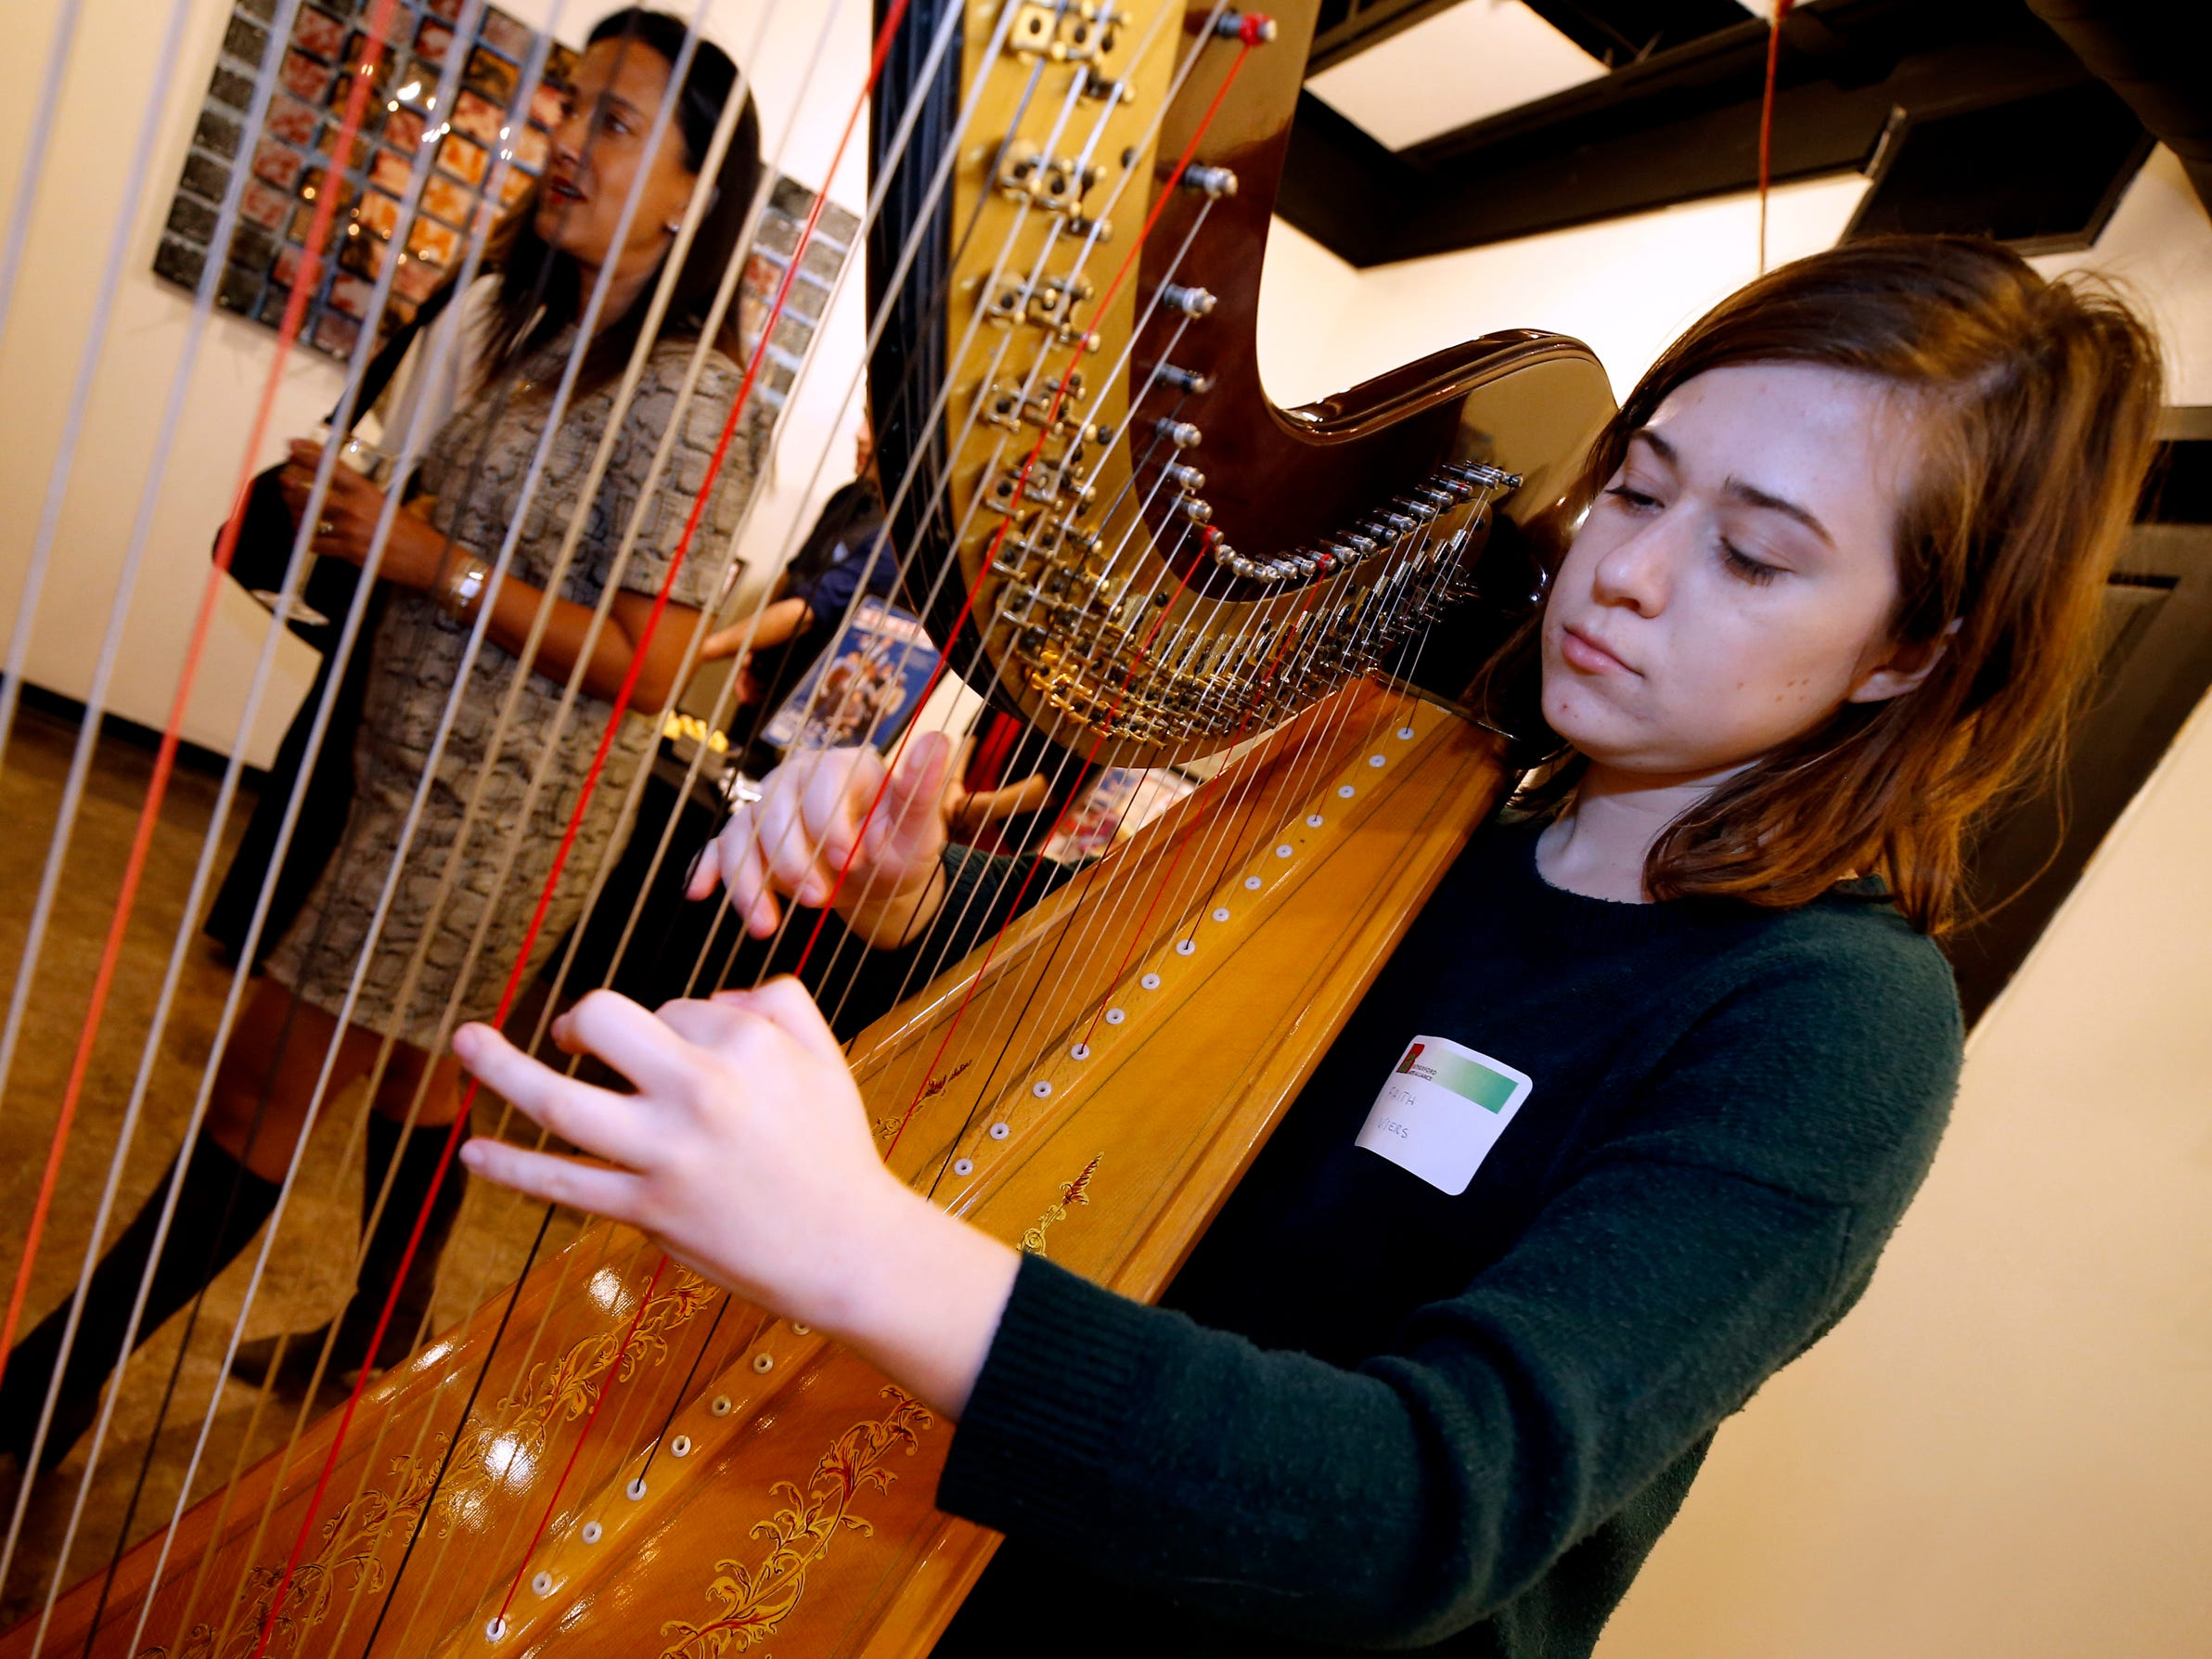 Faith Piers warms up her harp before playing during an arts reception for Rutherford Arts Alliance held at the Center for the Arts on Wednesday Jan. 9, 2019.